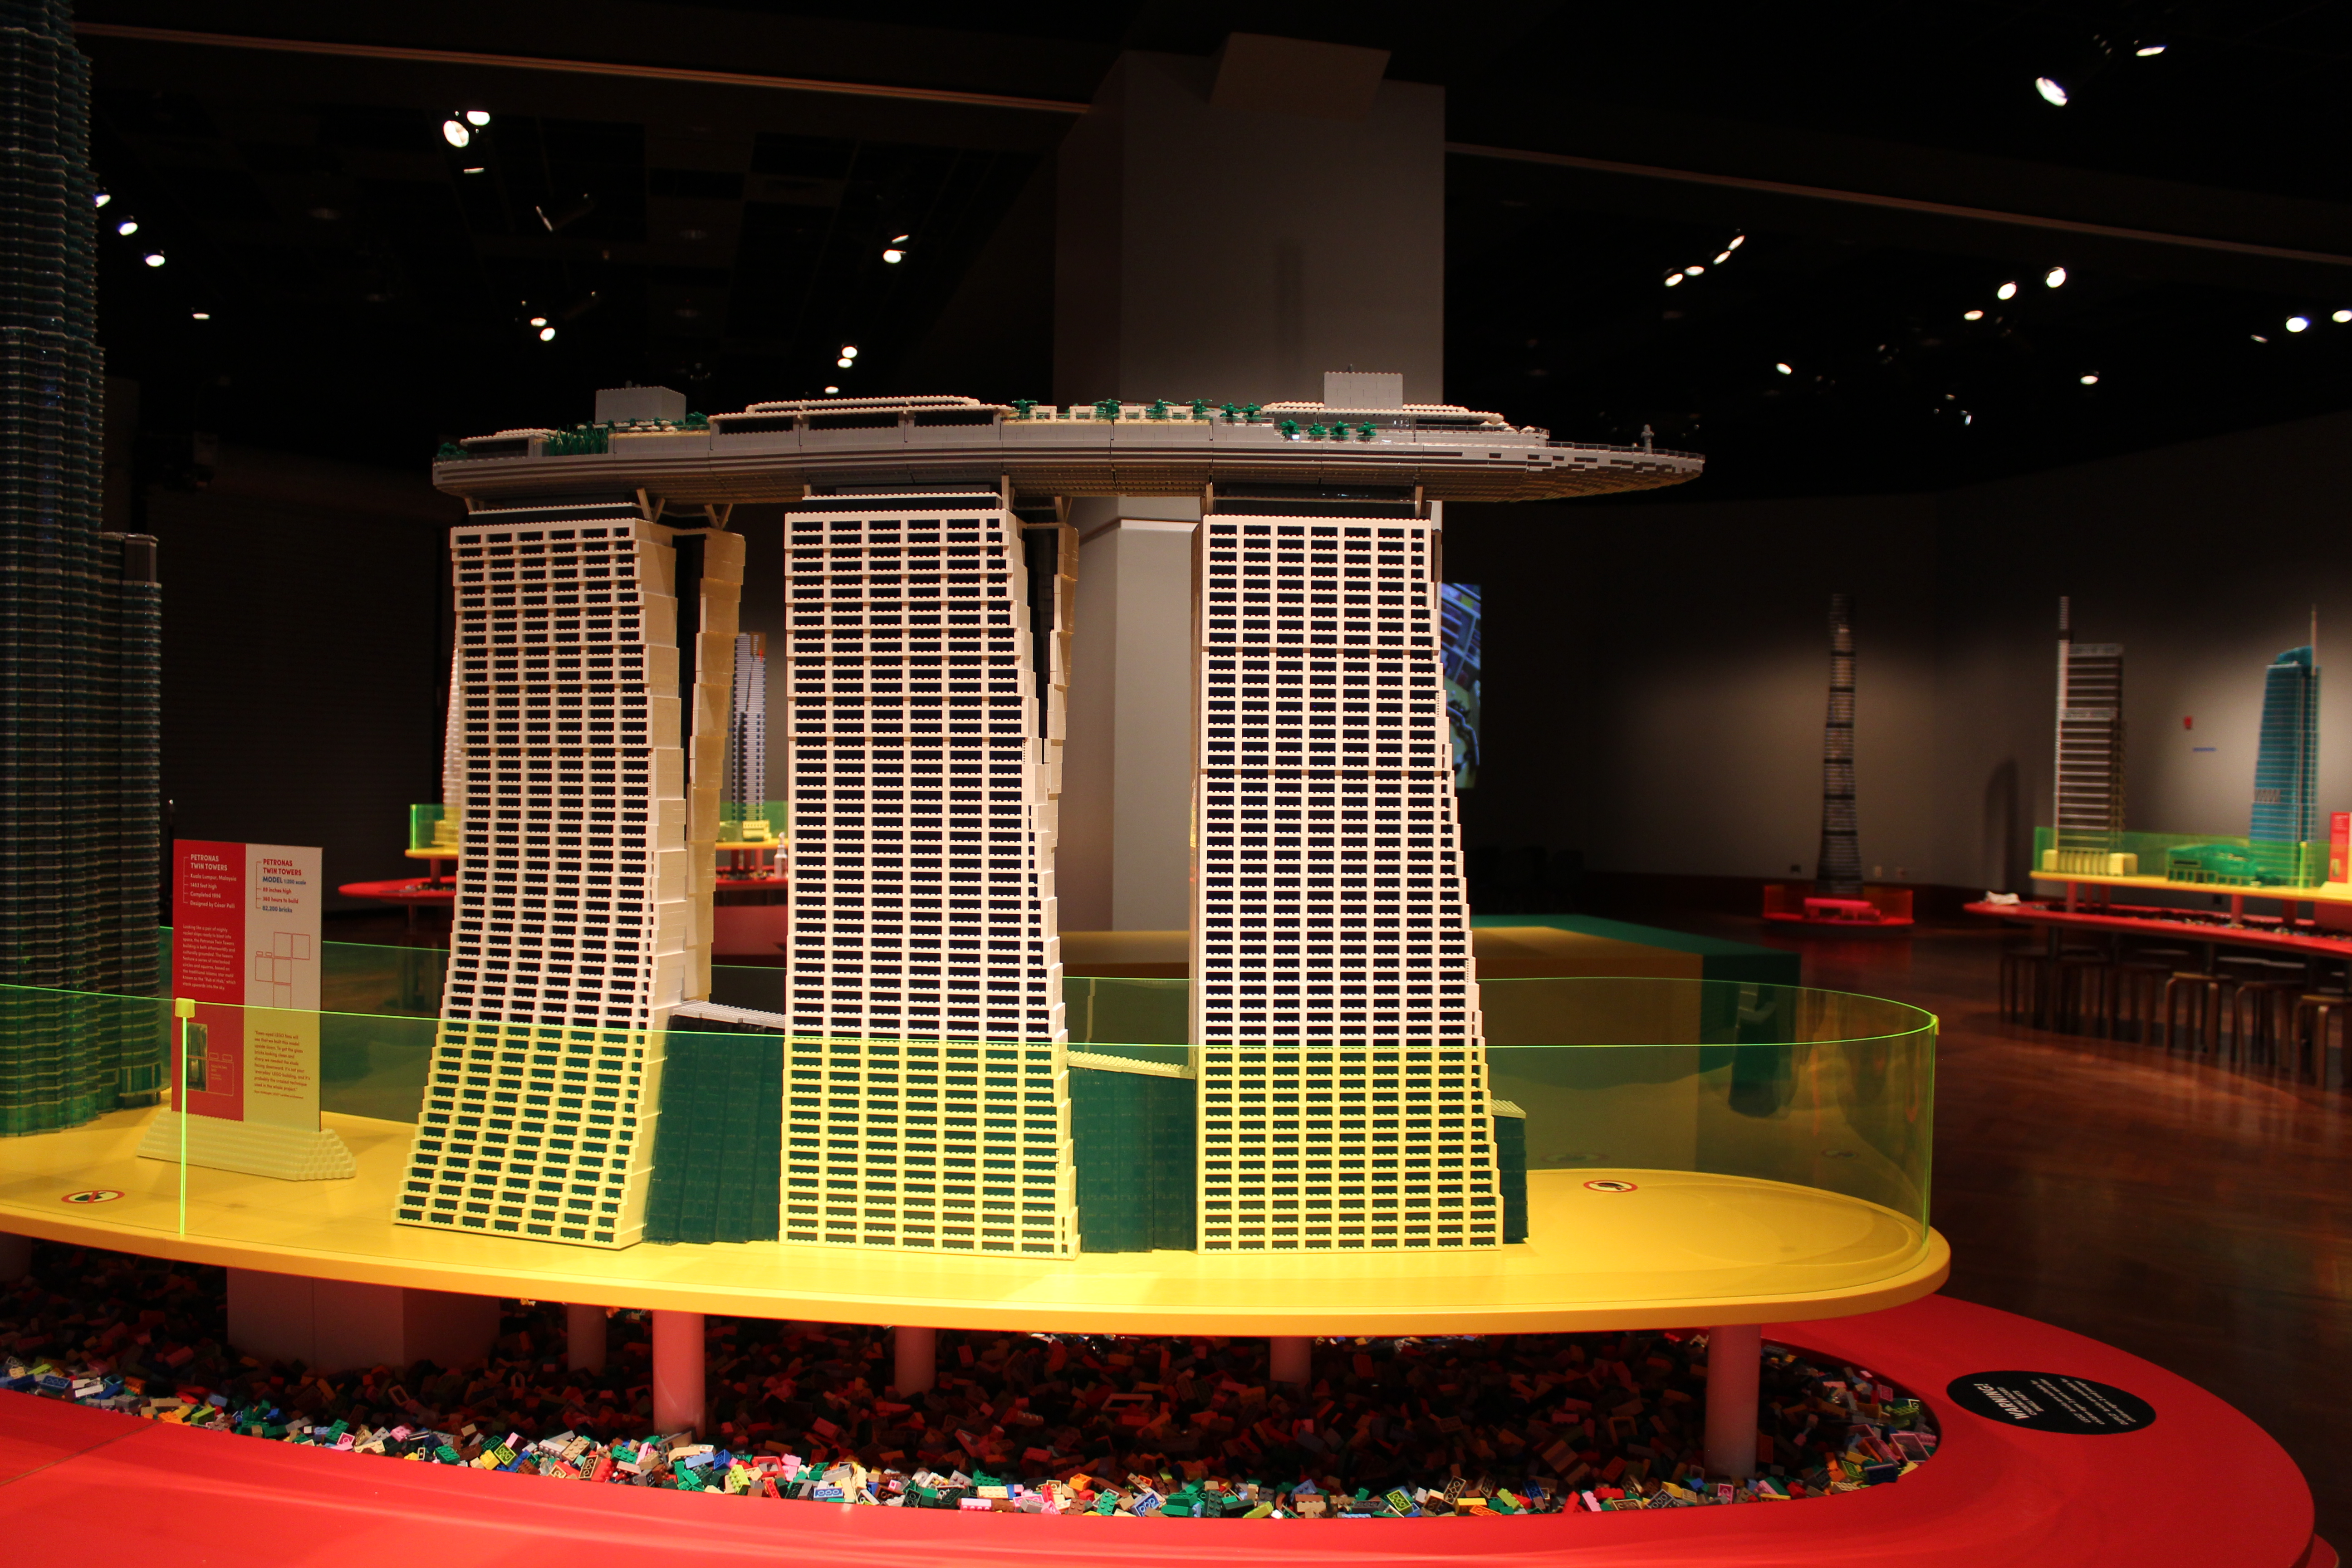 Photo shows a lego replica of the Marina Bay Sands